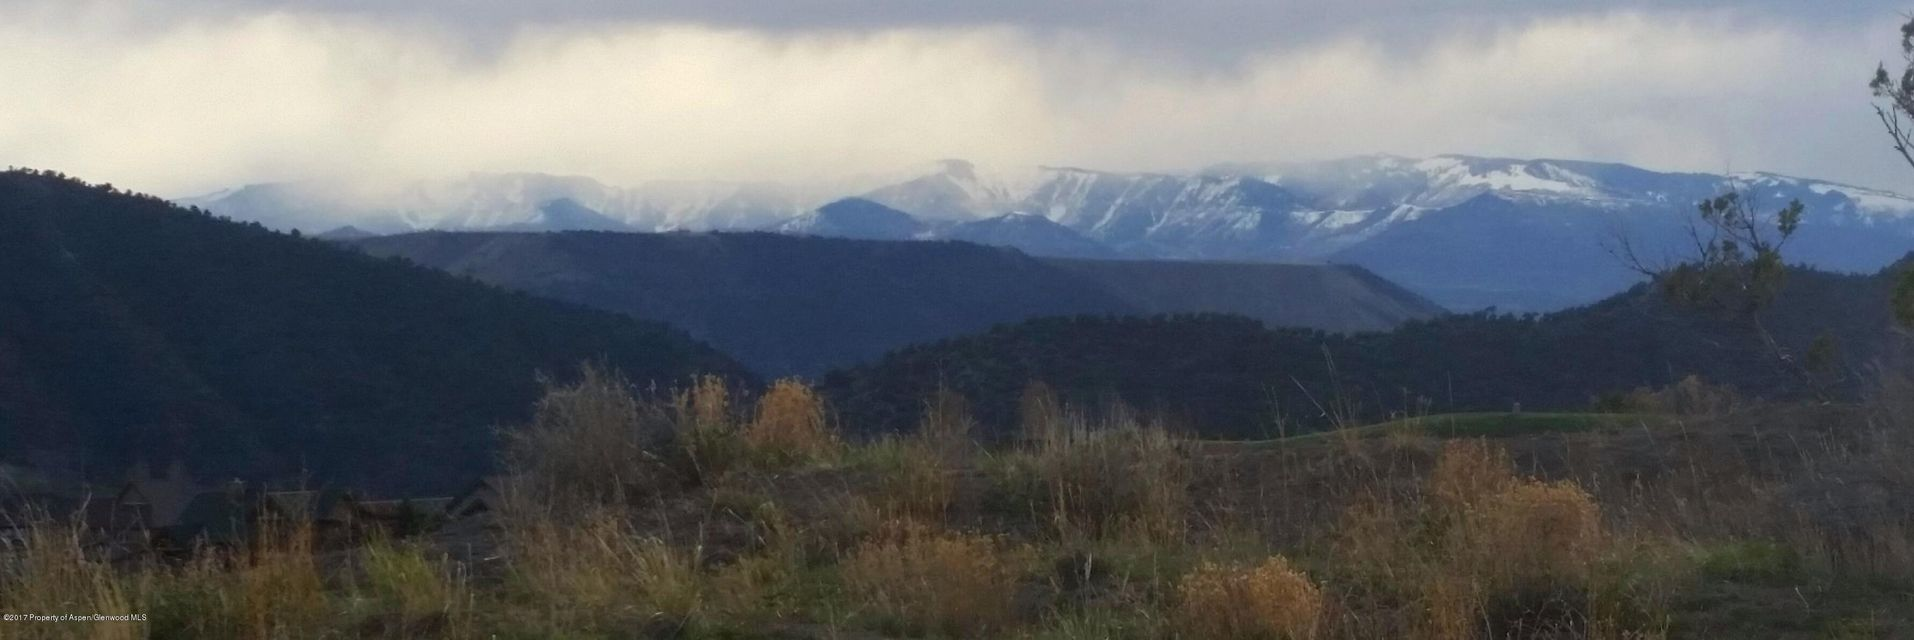 TBD Stag Court New Castle, Co 81647 - MLS #: 149945